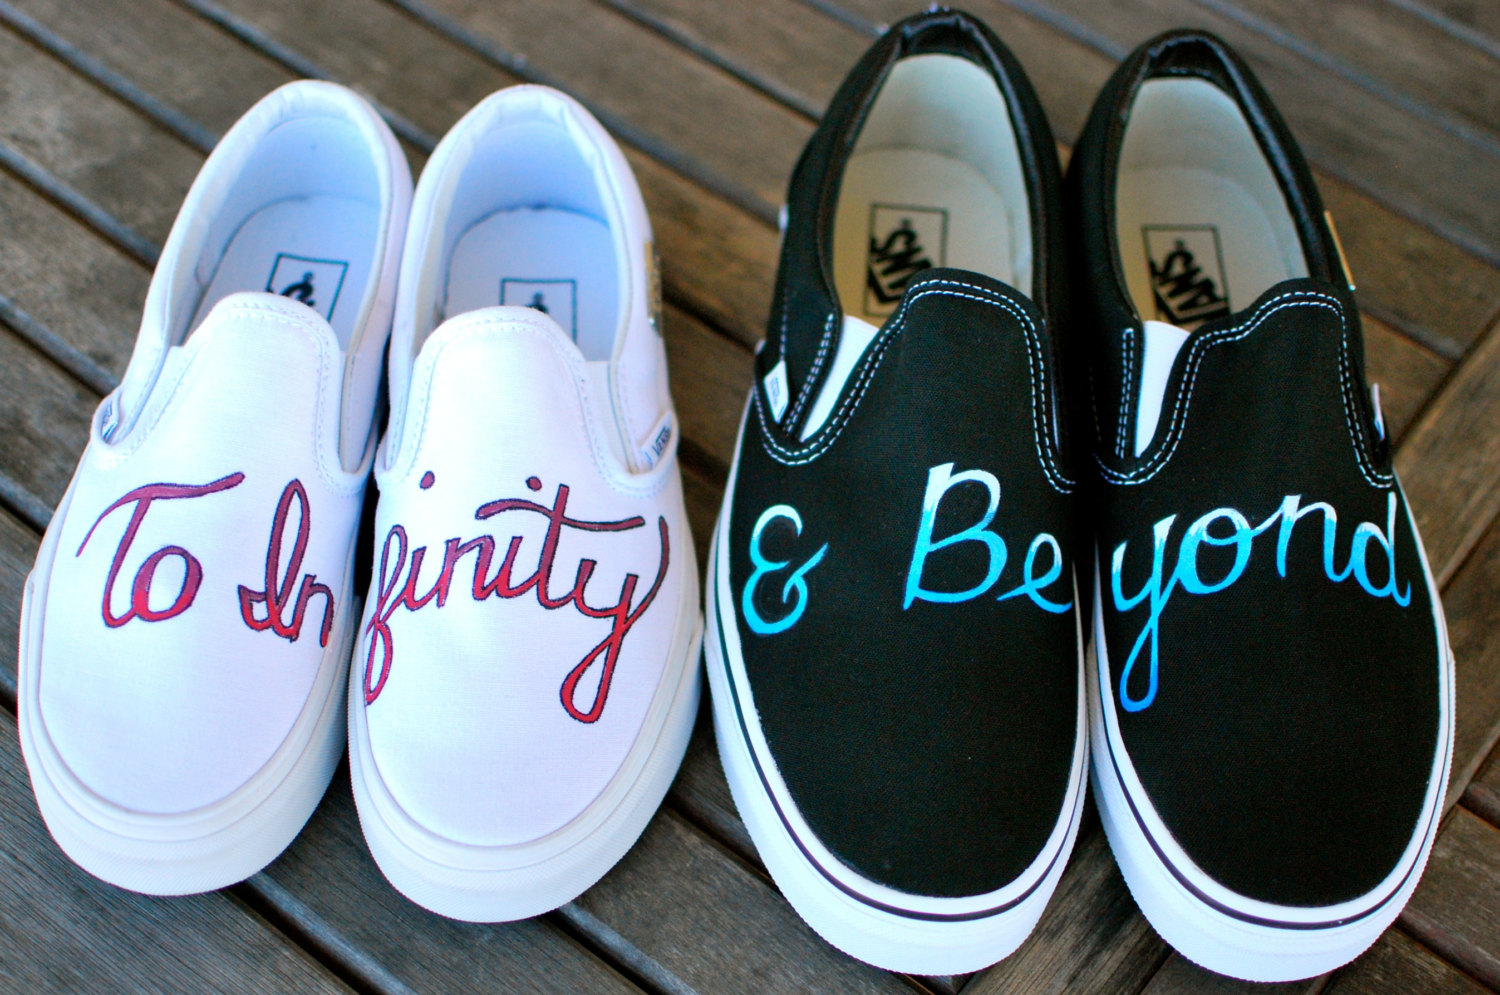 Couples inserted quotes on their simple shoes.